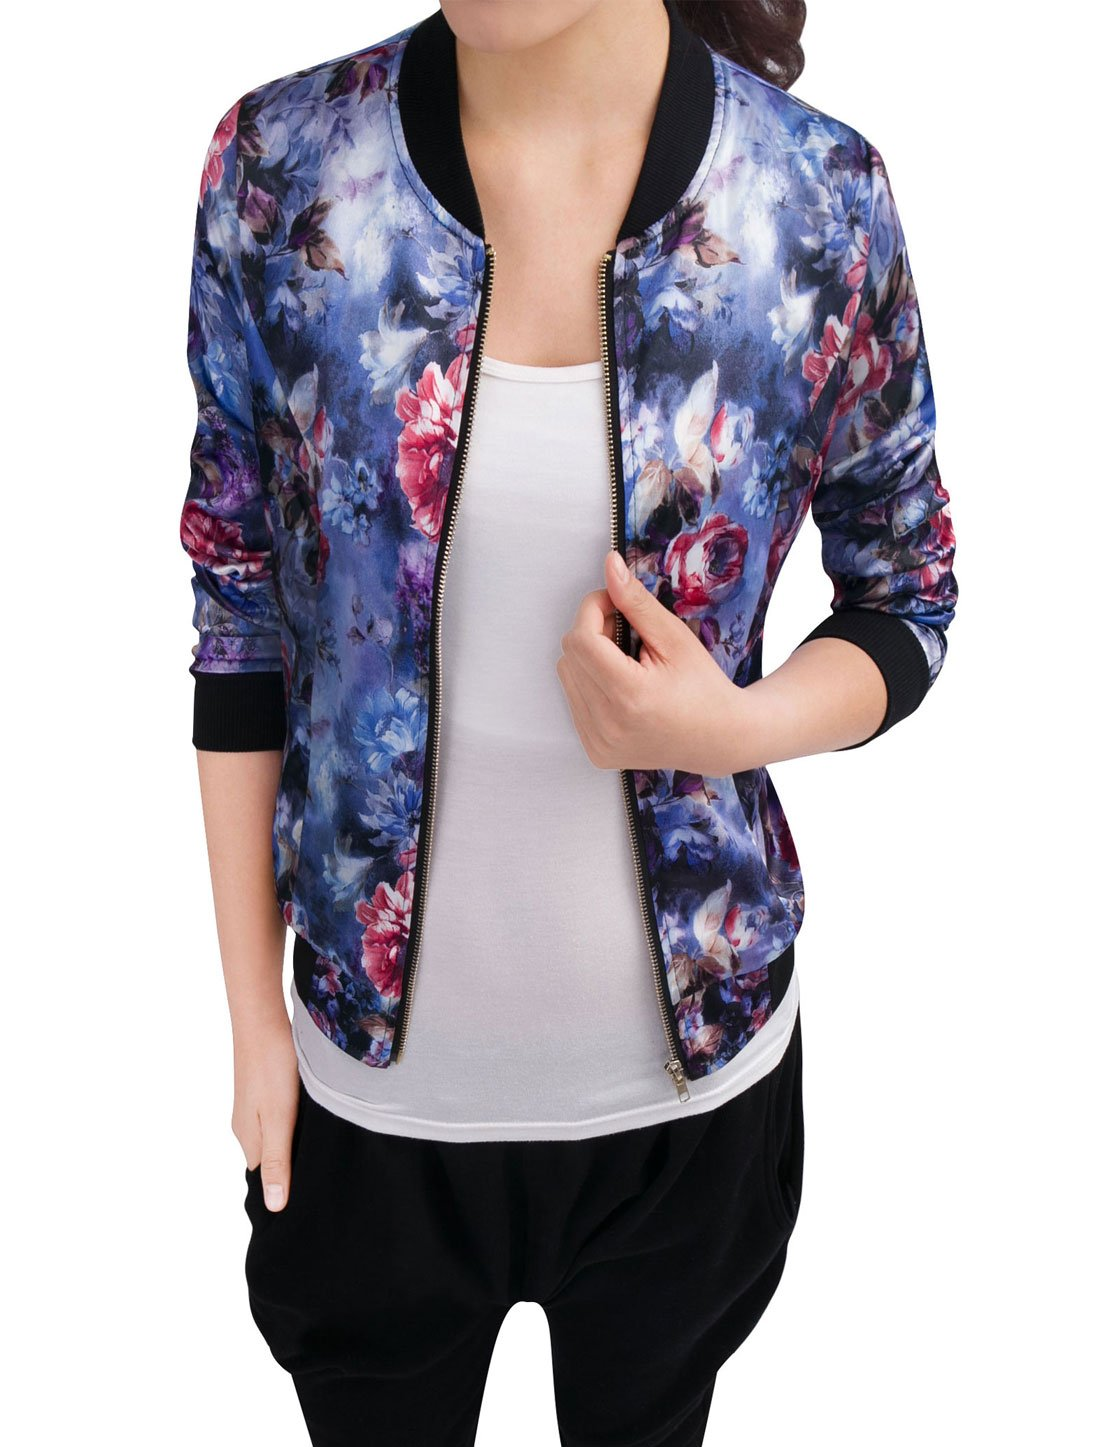 Allegra K Women's Long Sleeve Zip up Floral Print Casual Bomber Jacket Blue M